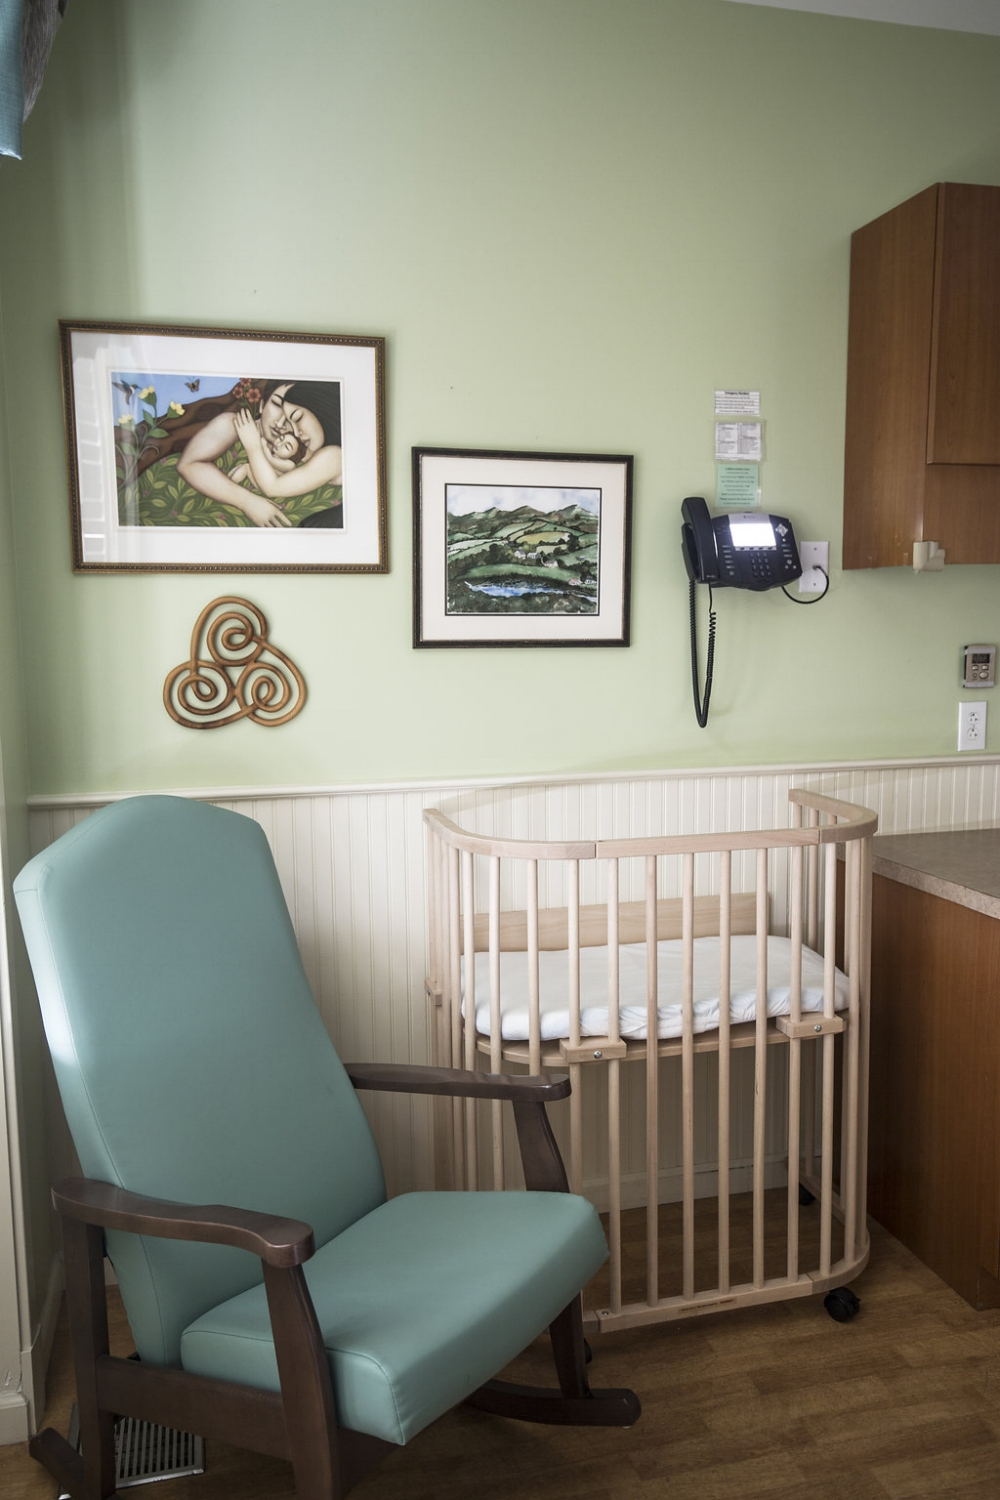 Healthcare Design - Healthcare design for Lifecycle WomanCare in Bryn Mawr, PA included modernization and aesthetic refreshing of the birth suites.